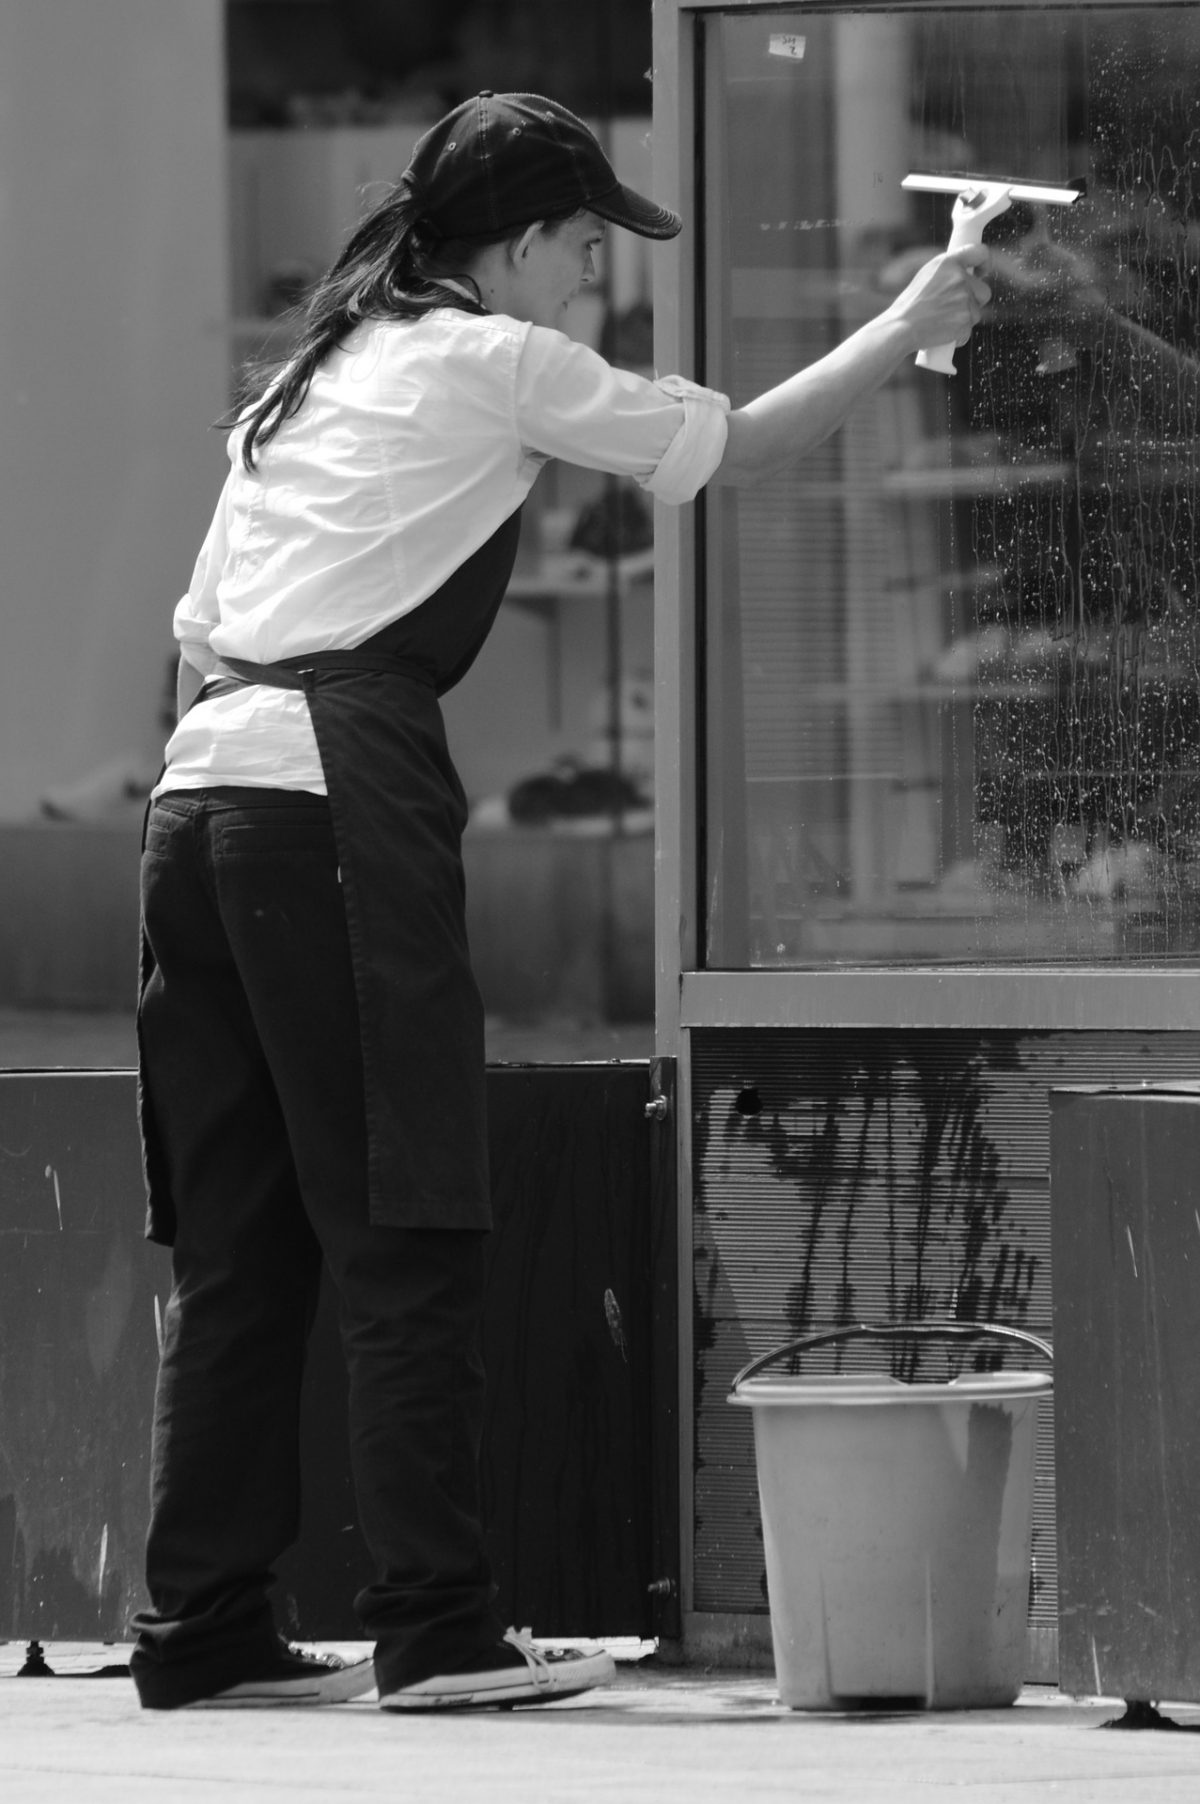 How To Choose The Best Window Cleaning Services